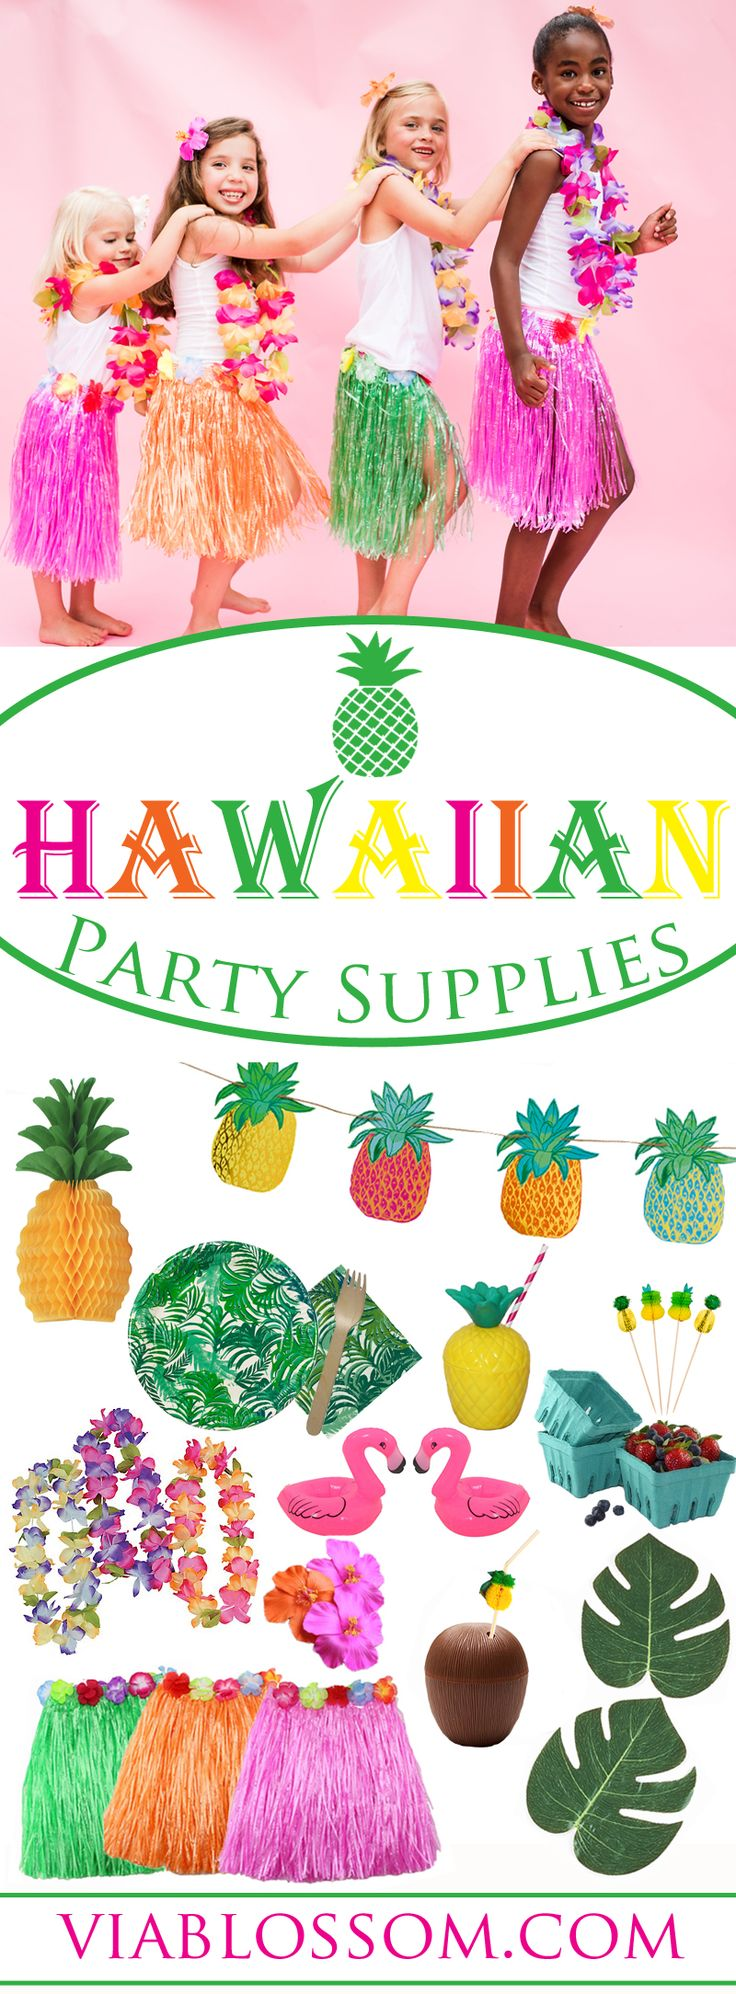 you don't want to miss our fabulous Luau Party supplies!  They are perfect for a Moana birthday party or a Hawaiian themed party or a tropical party!  If you're looking for Luau Party ideas look no further!